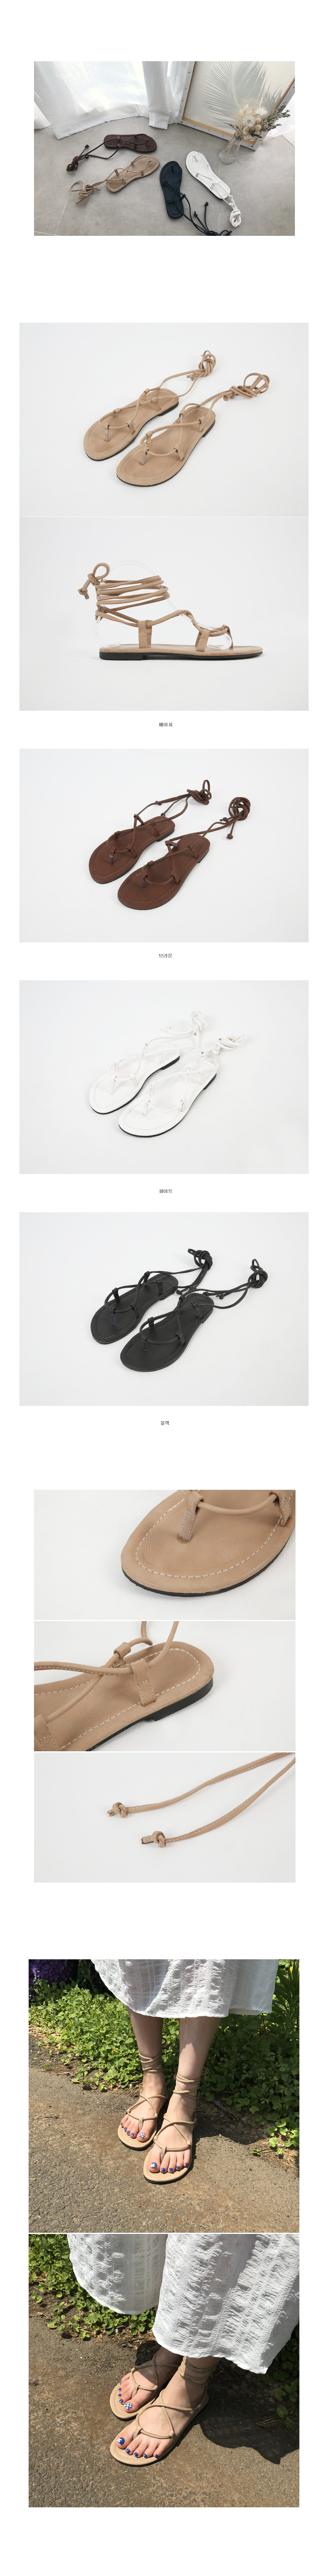 Ant strap sandals